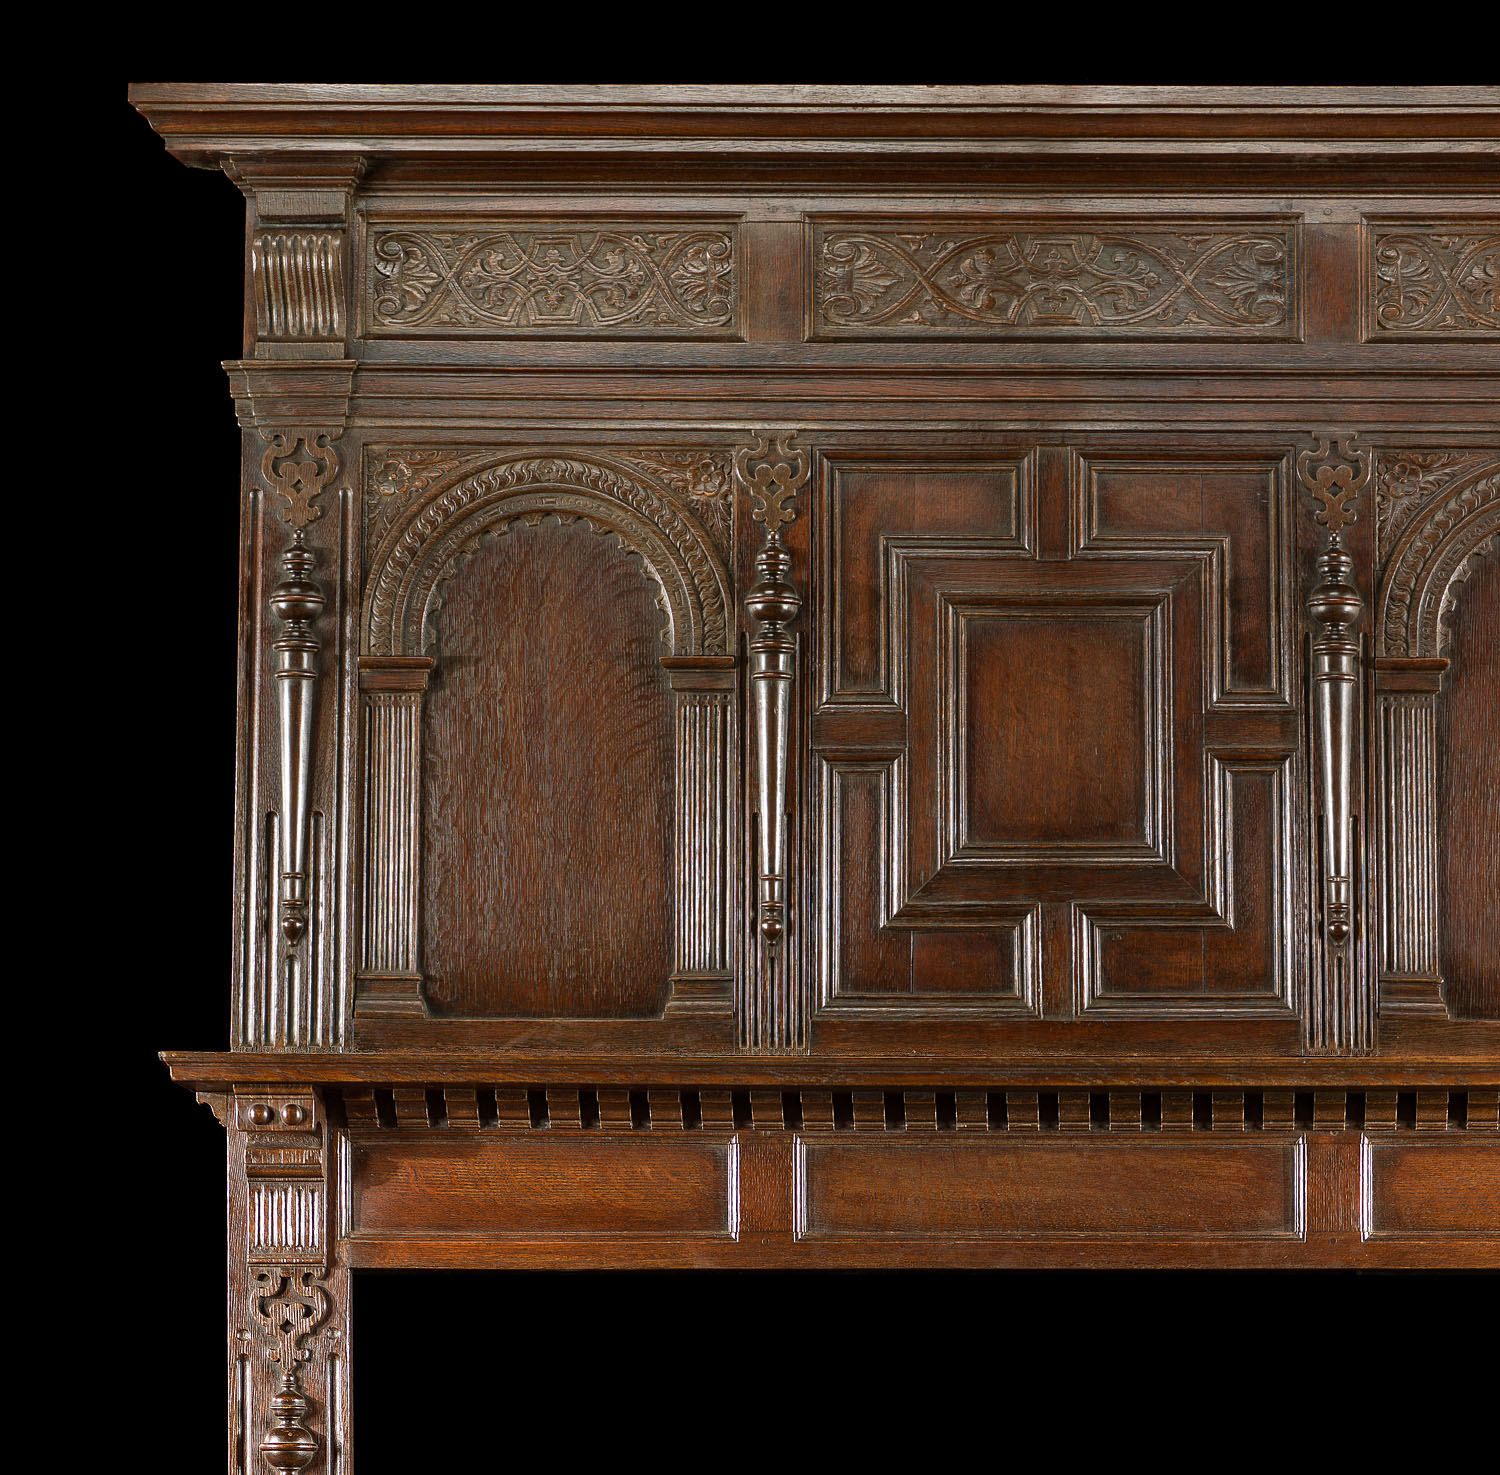 A Jacobean style carved oak Fireplace Mantel